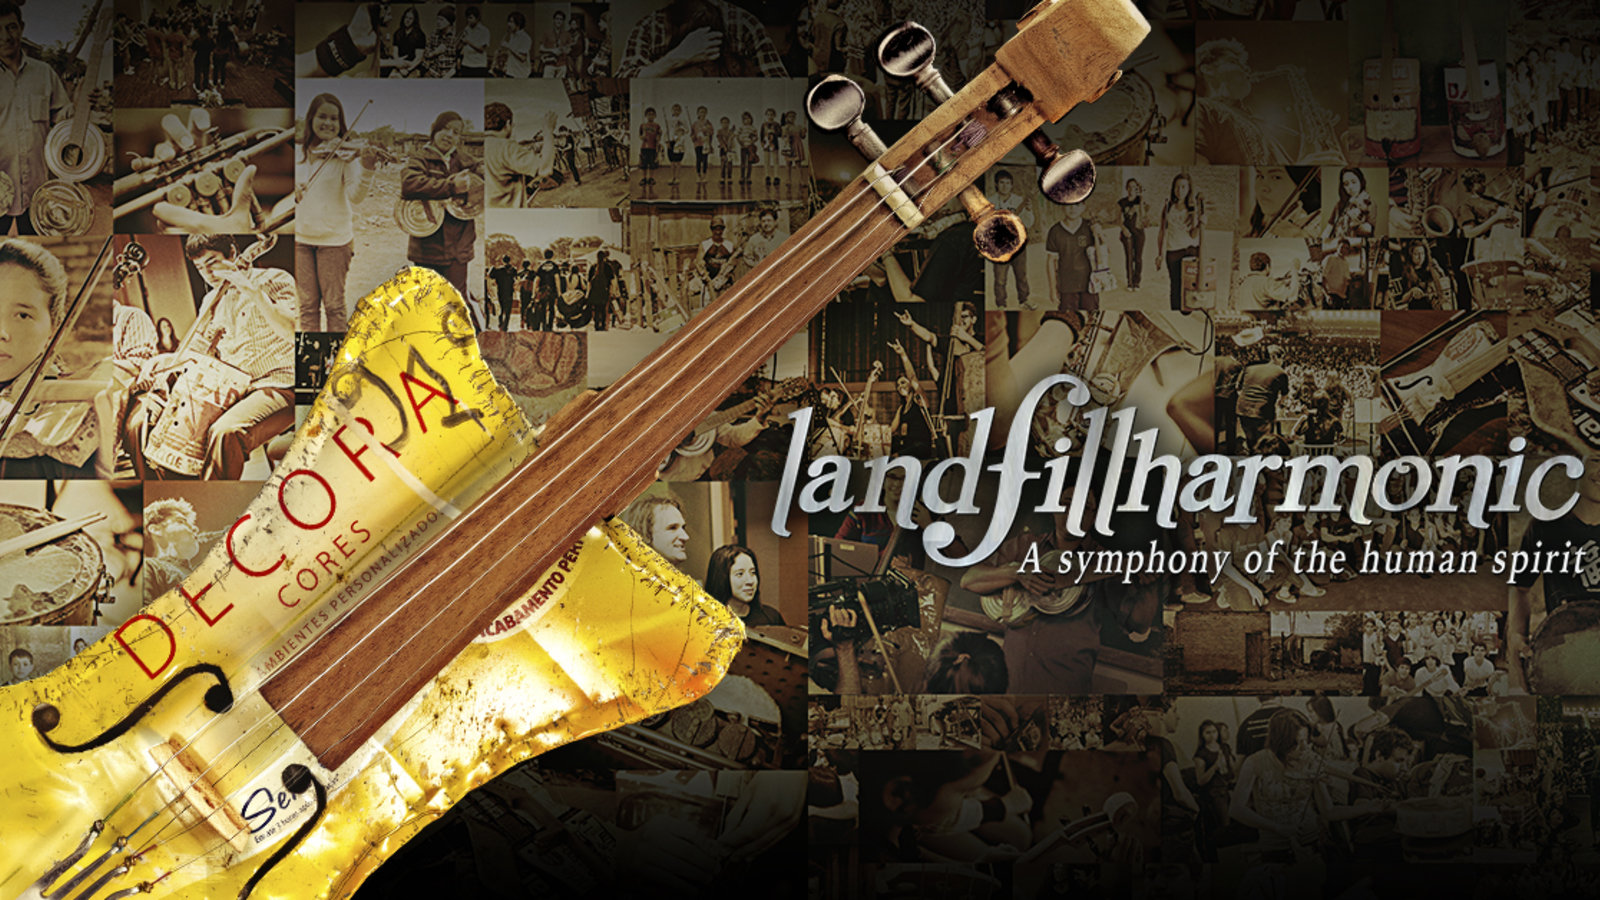 Landfill Harmonic - A Symphony of the Human Spirit